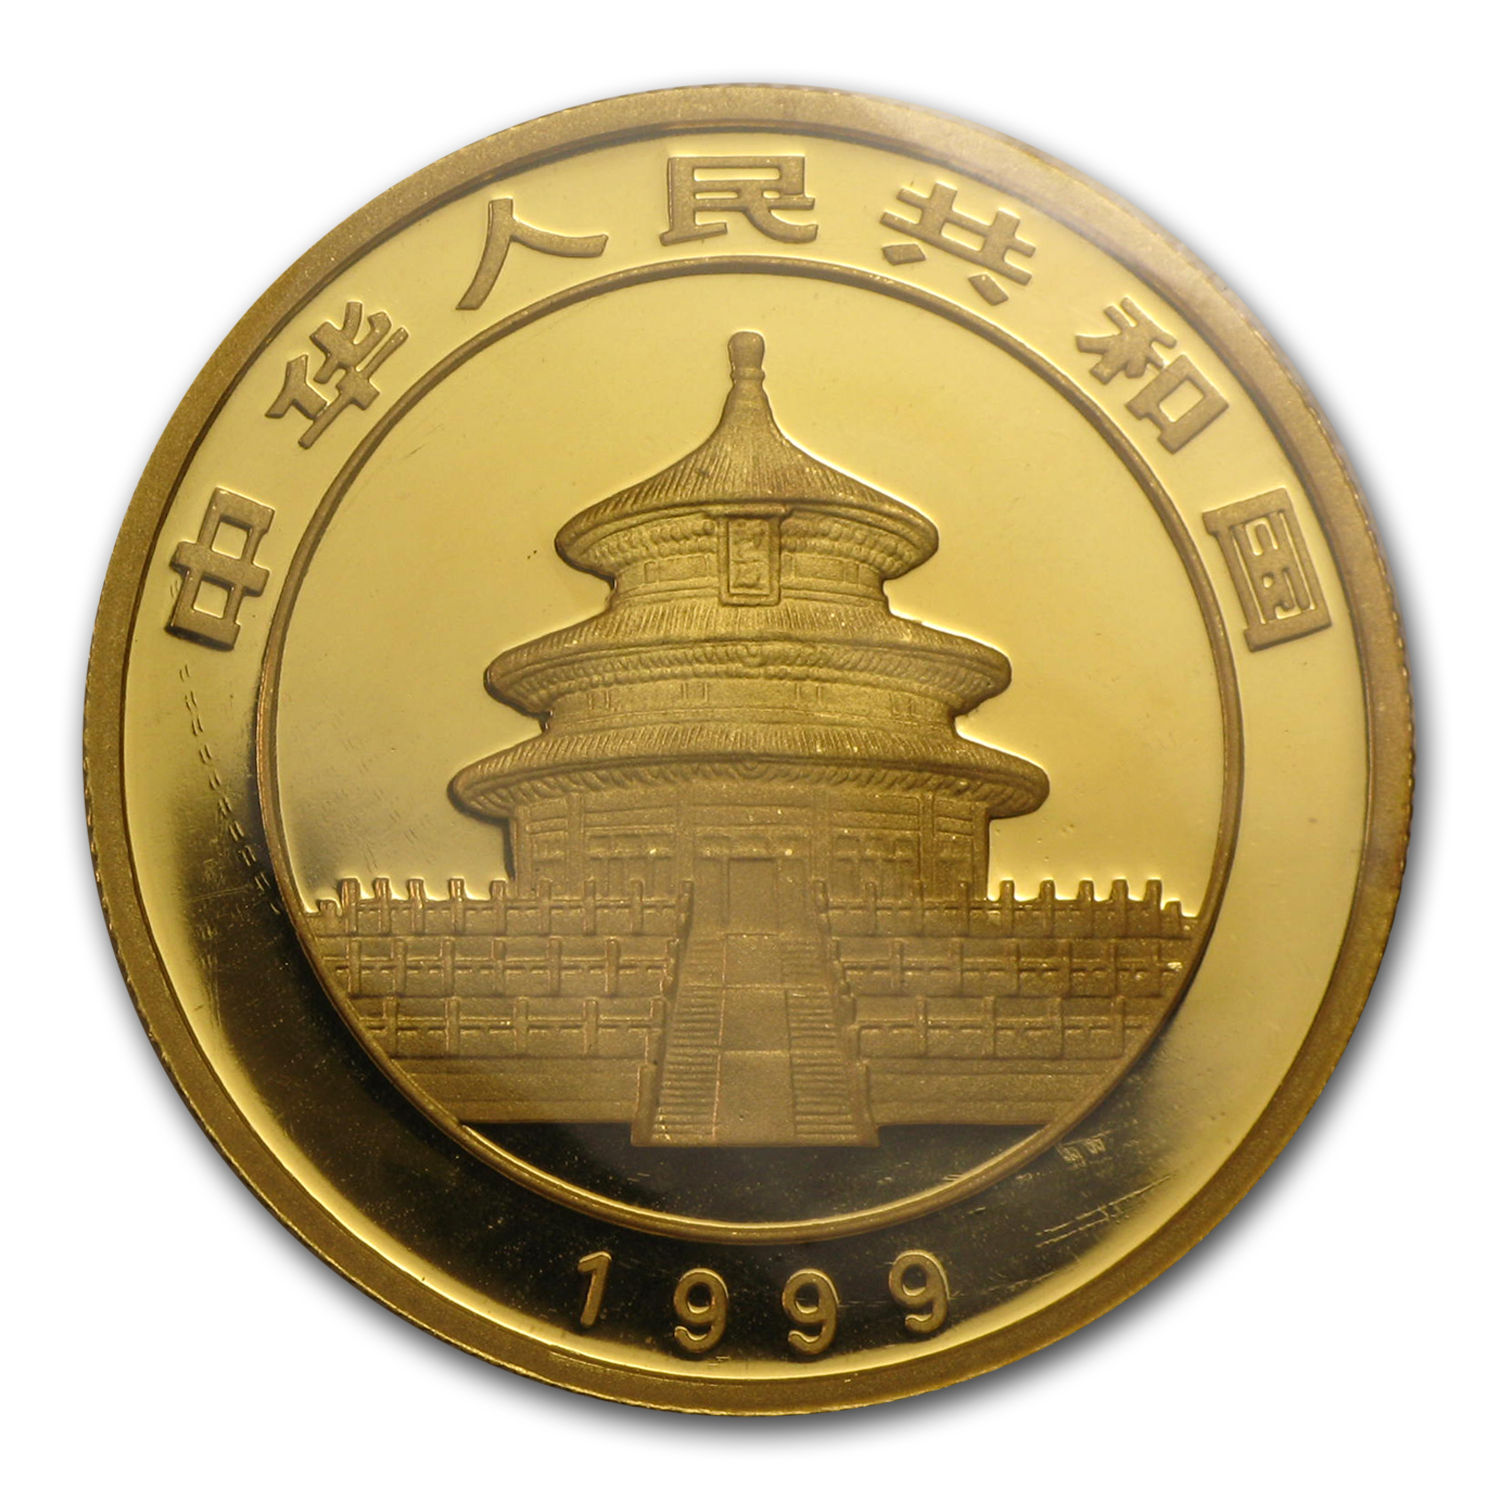 1999 China 1/2 oz Gold Panda Large Date No Serif BU (Sealed)